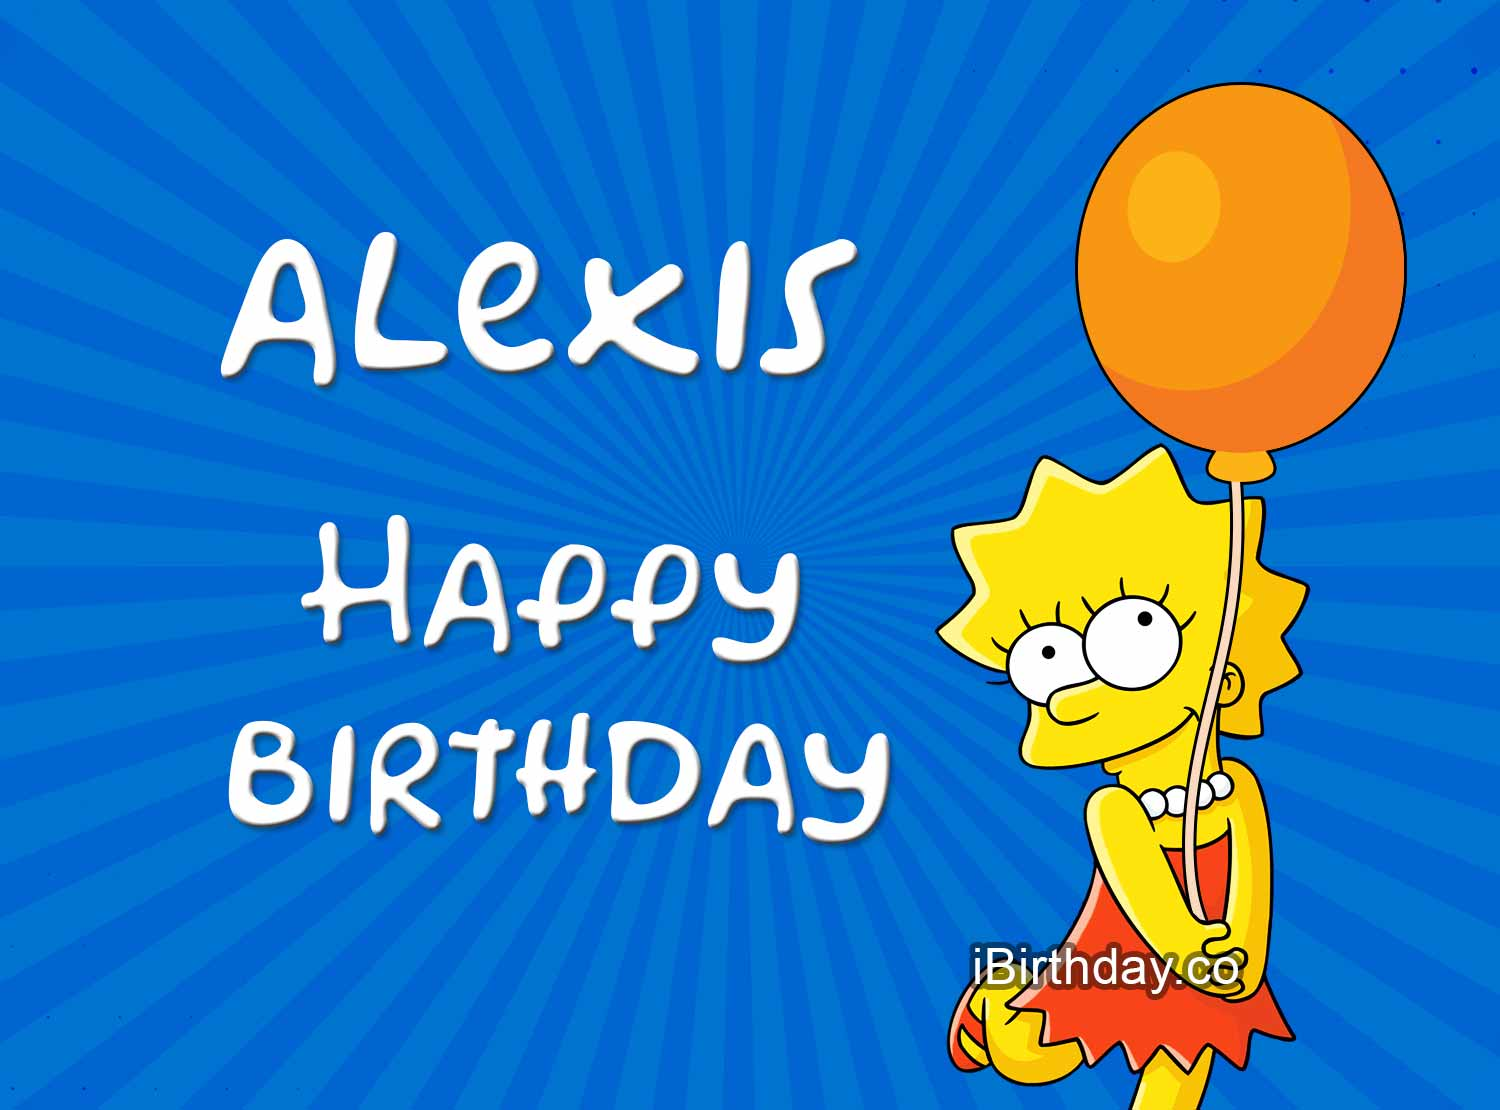 Alexis Lisa Simpsons Birthday Meme